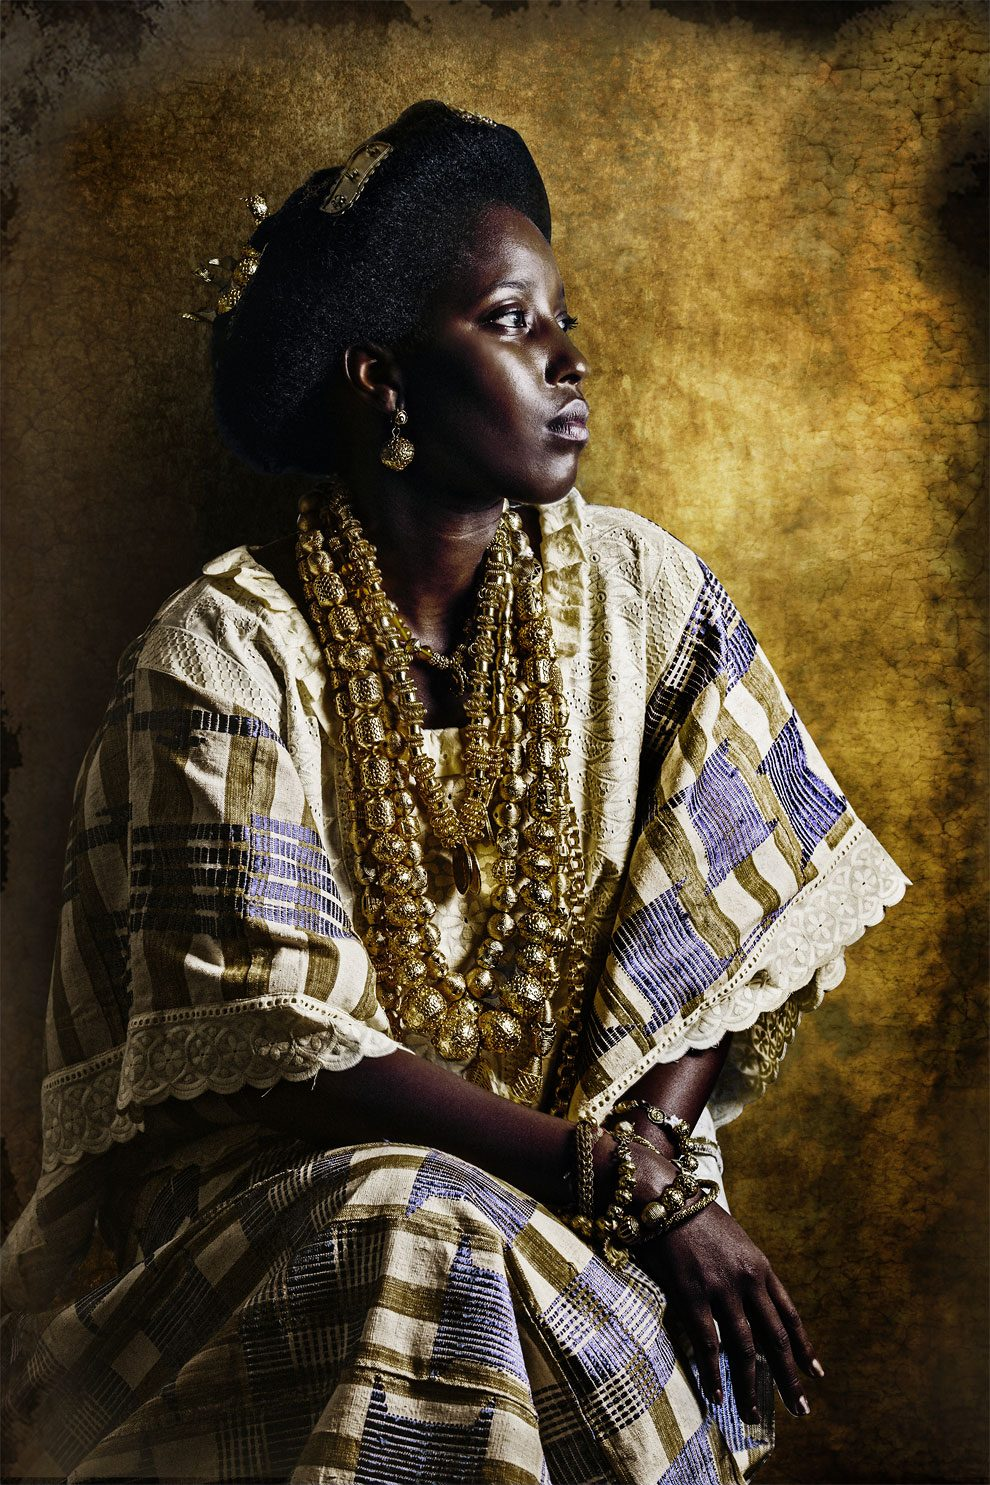 ivorian-photographer-joana-choumali-shows-modern-african-women-dressed-in-the-traditional-clothes-of-their-ancestors7